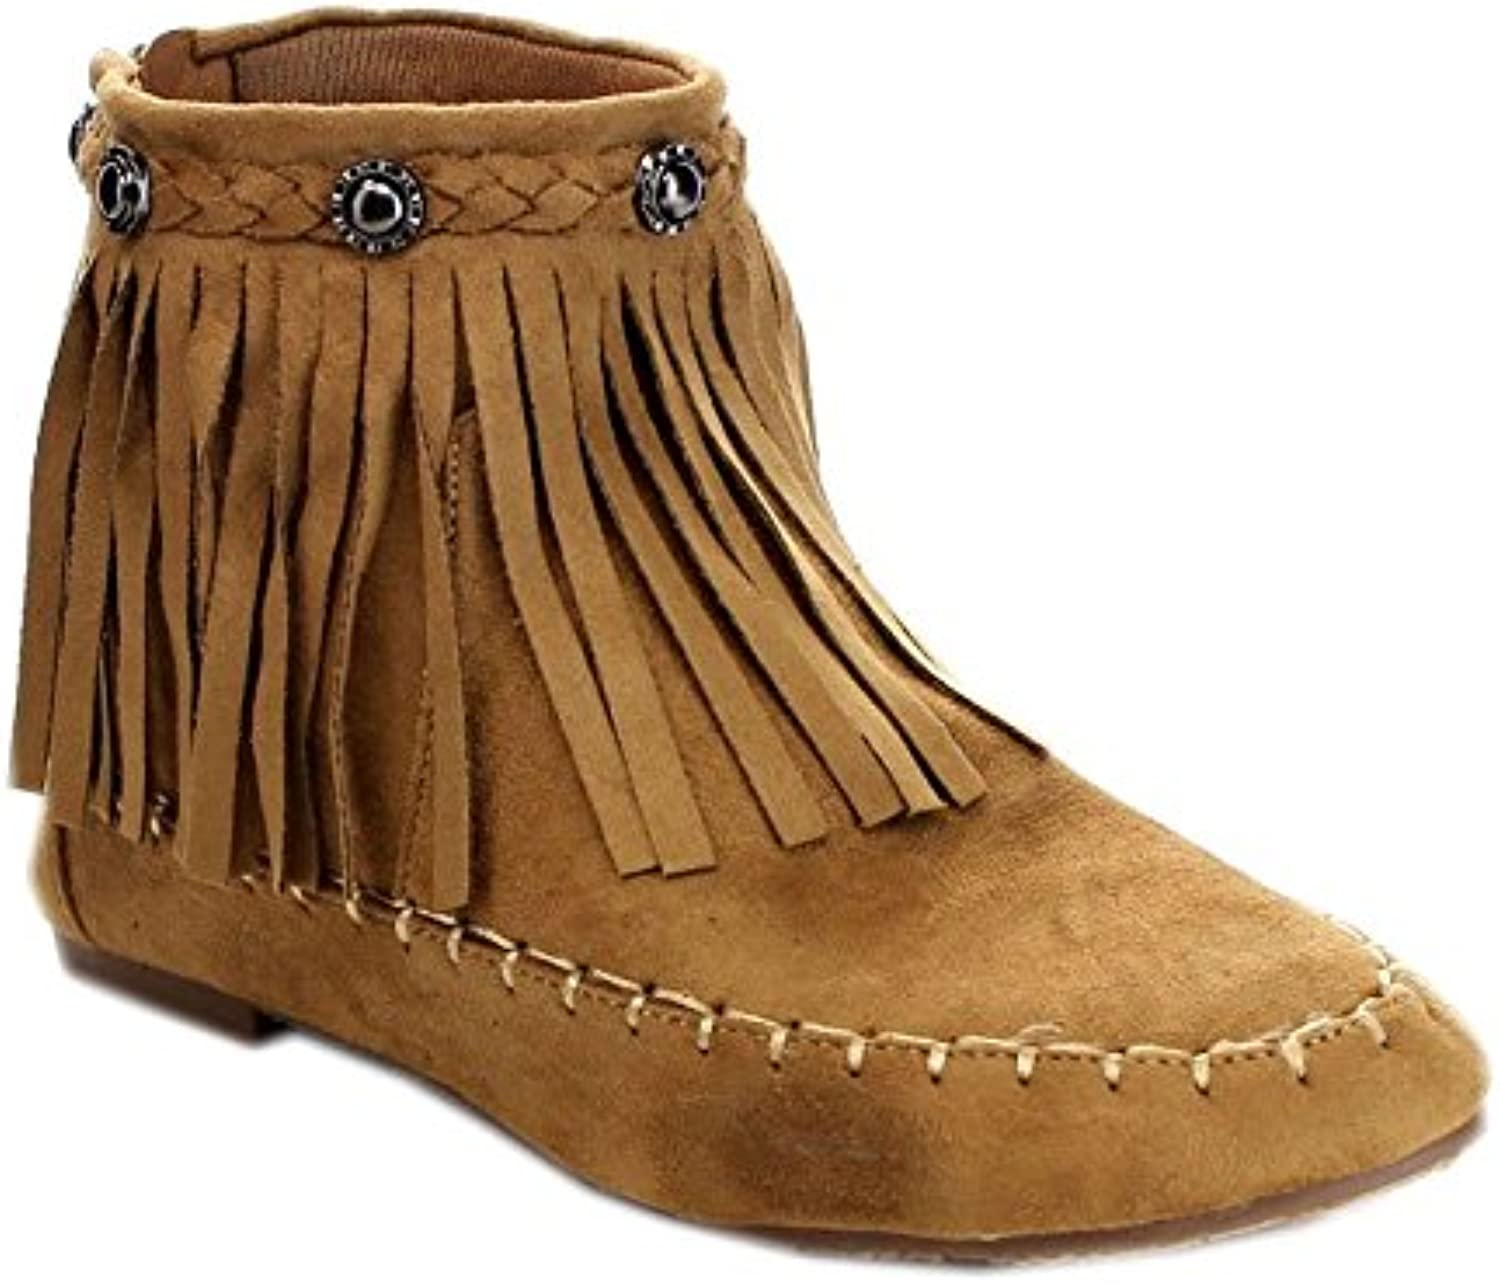 Bolaro Bc5040 Women's Comfort Fringe Layer Back Zipper Flat Ankle Booties